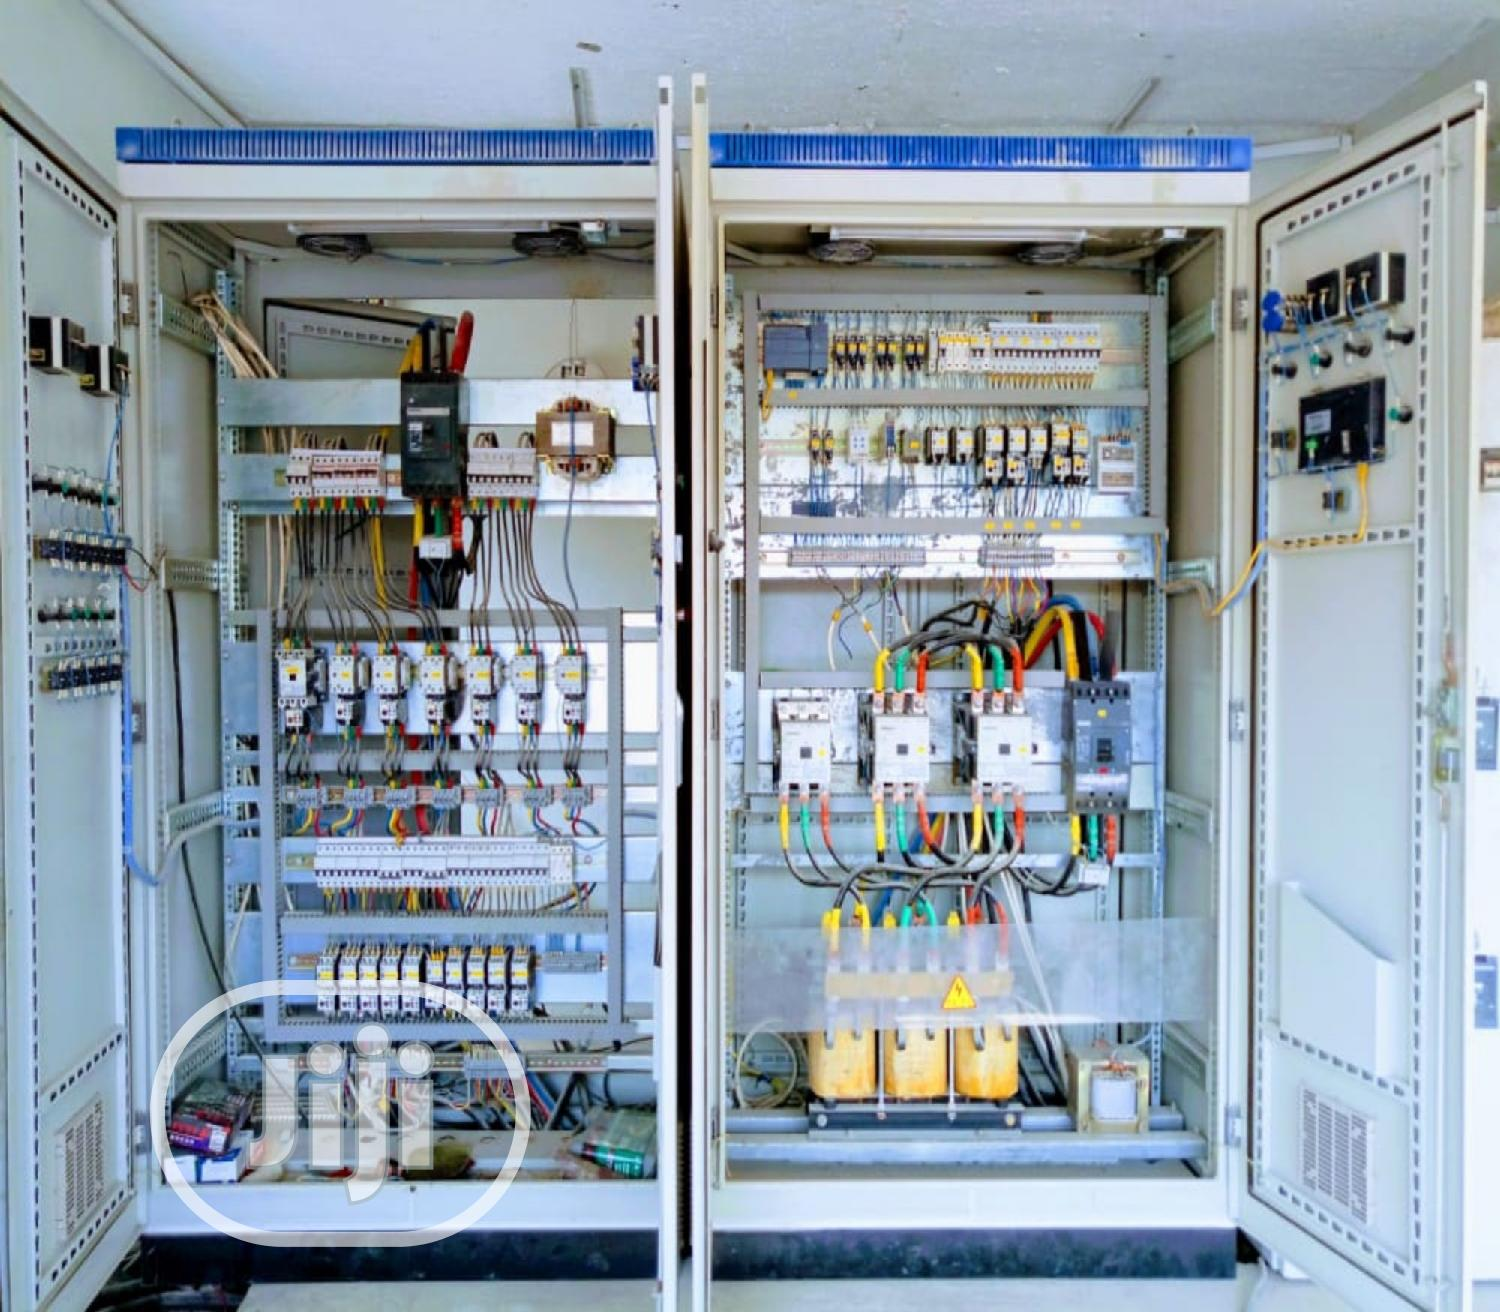 Archive: An Industrial Electrician URGENTLY NEEDED